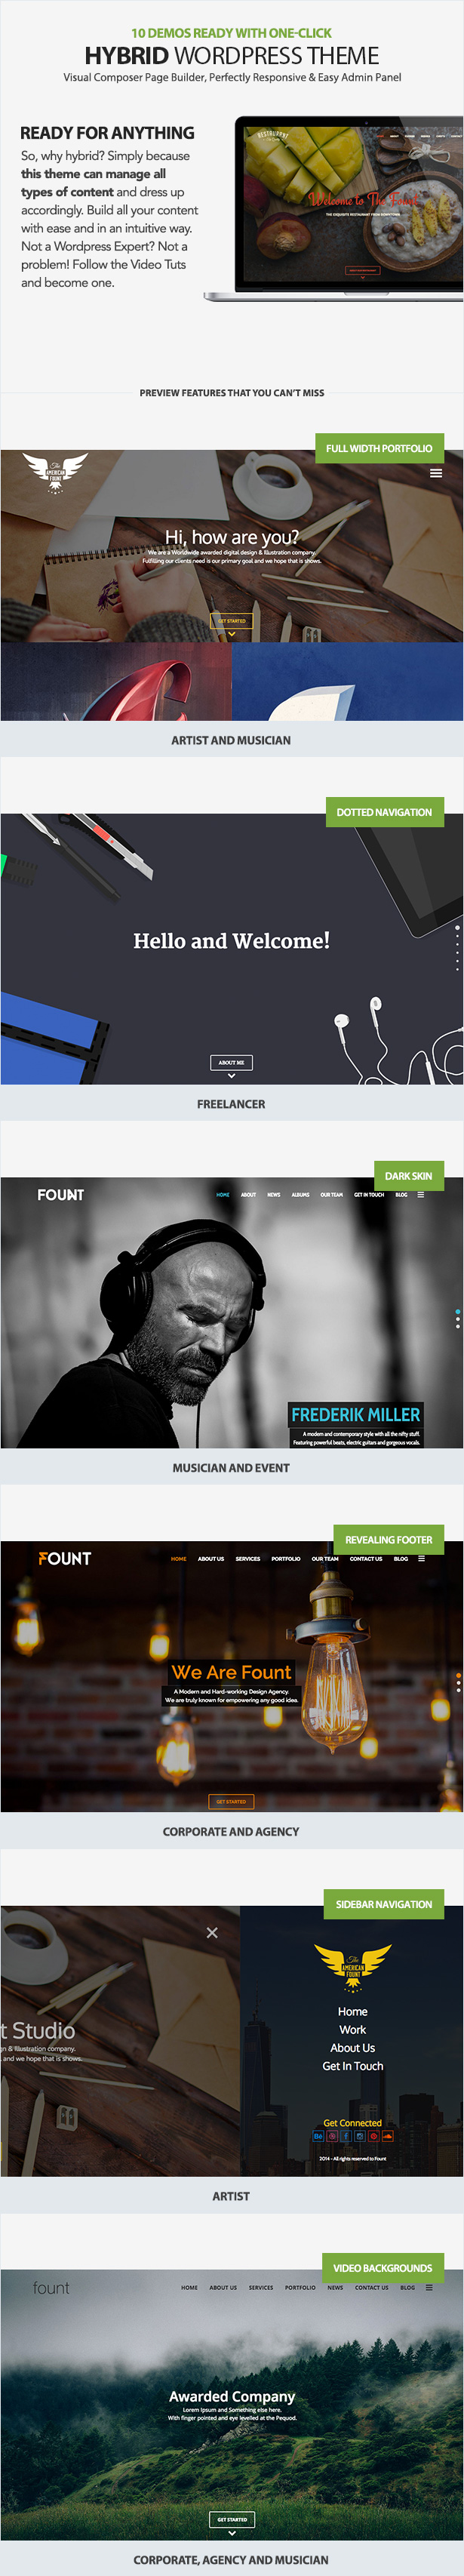 Fount - One & Multipage Hybrid WordPress Theme - 2